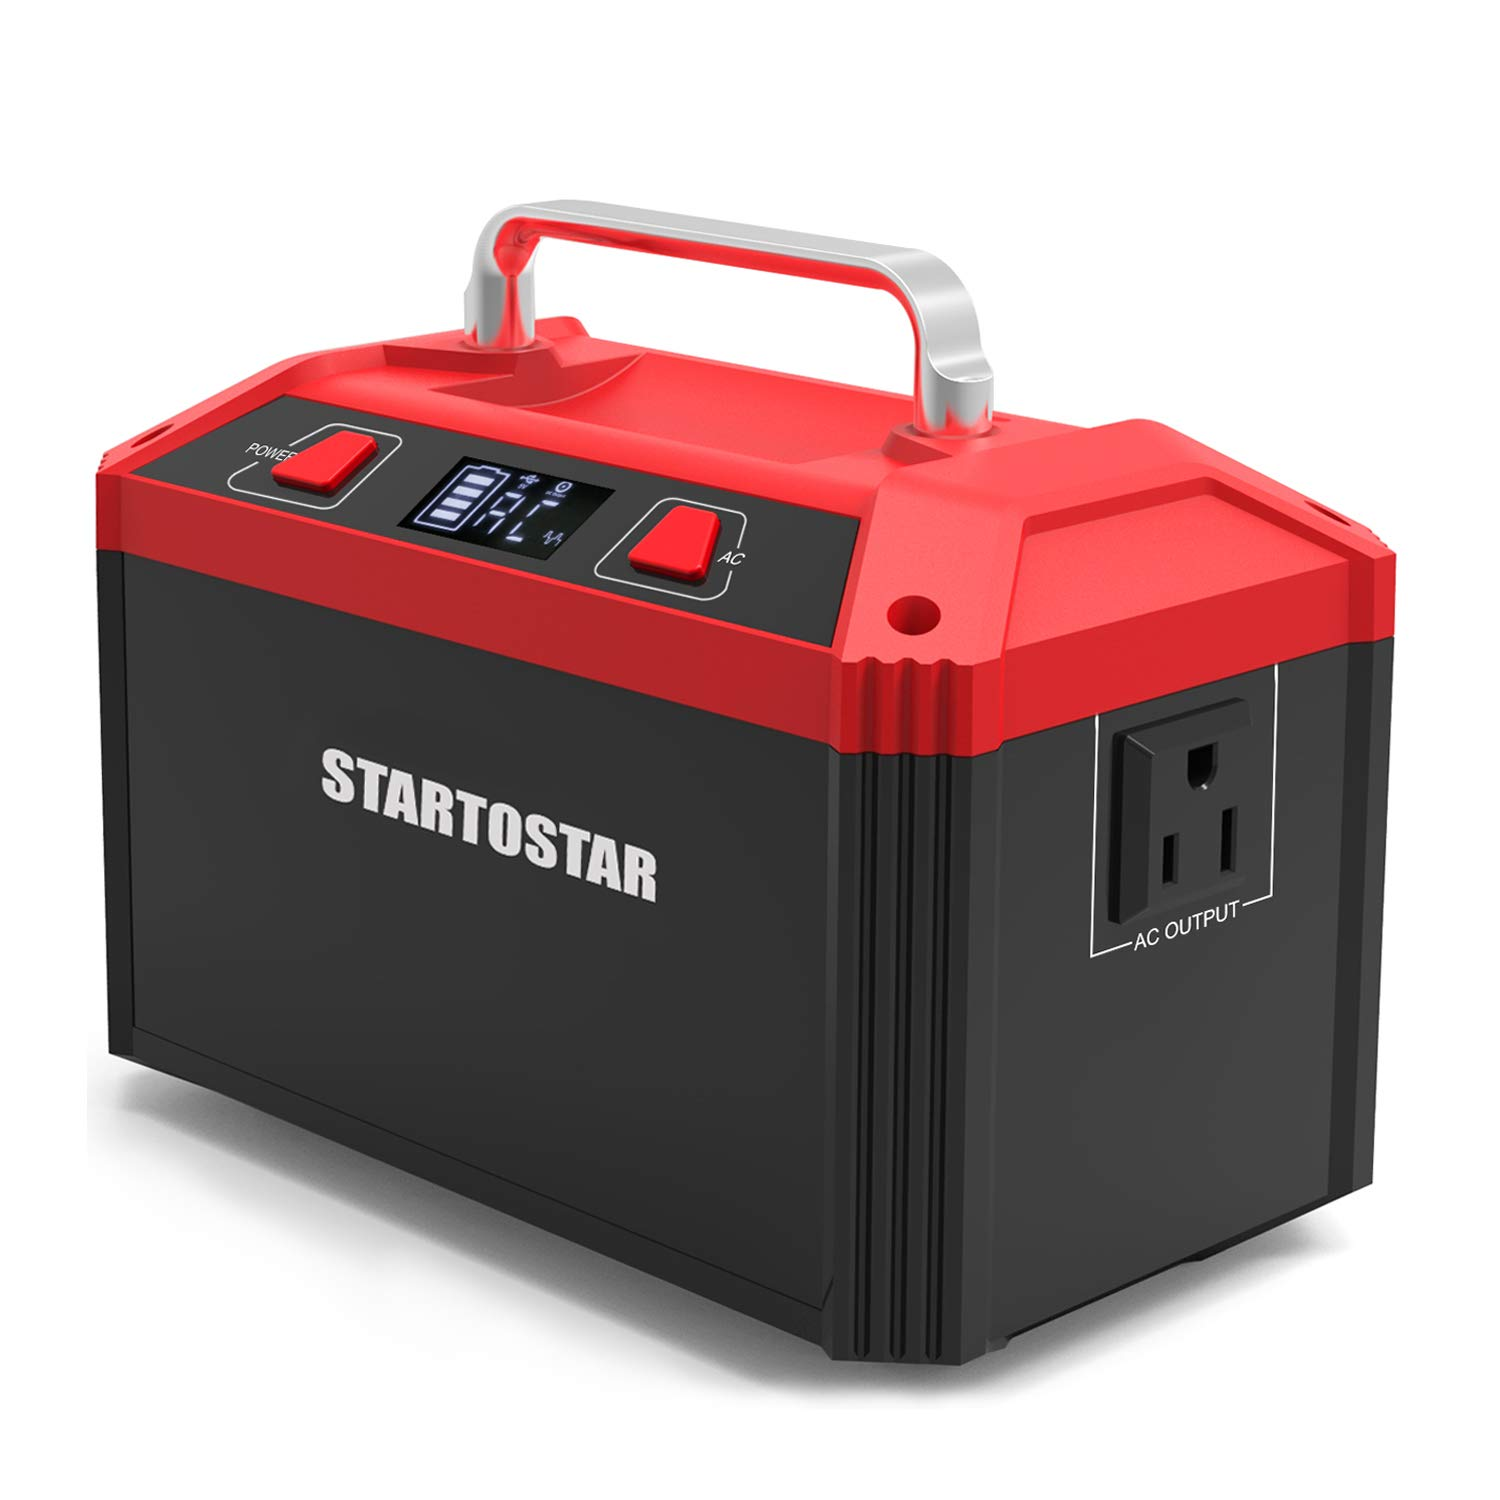 Startostar Portable Generator Power Station, 178Wh 48000mAh Lithium Battery Pack, 150W Rechargeable Emergency Power Supply with 110V AC Outlet, 3 DC 12V, 2 USB 5V for CPAP Backup Camping Traveling